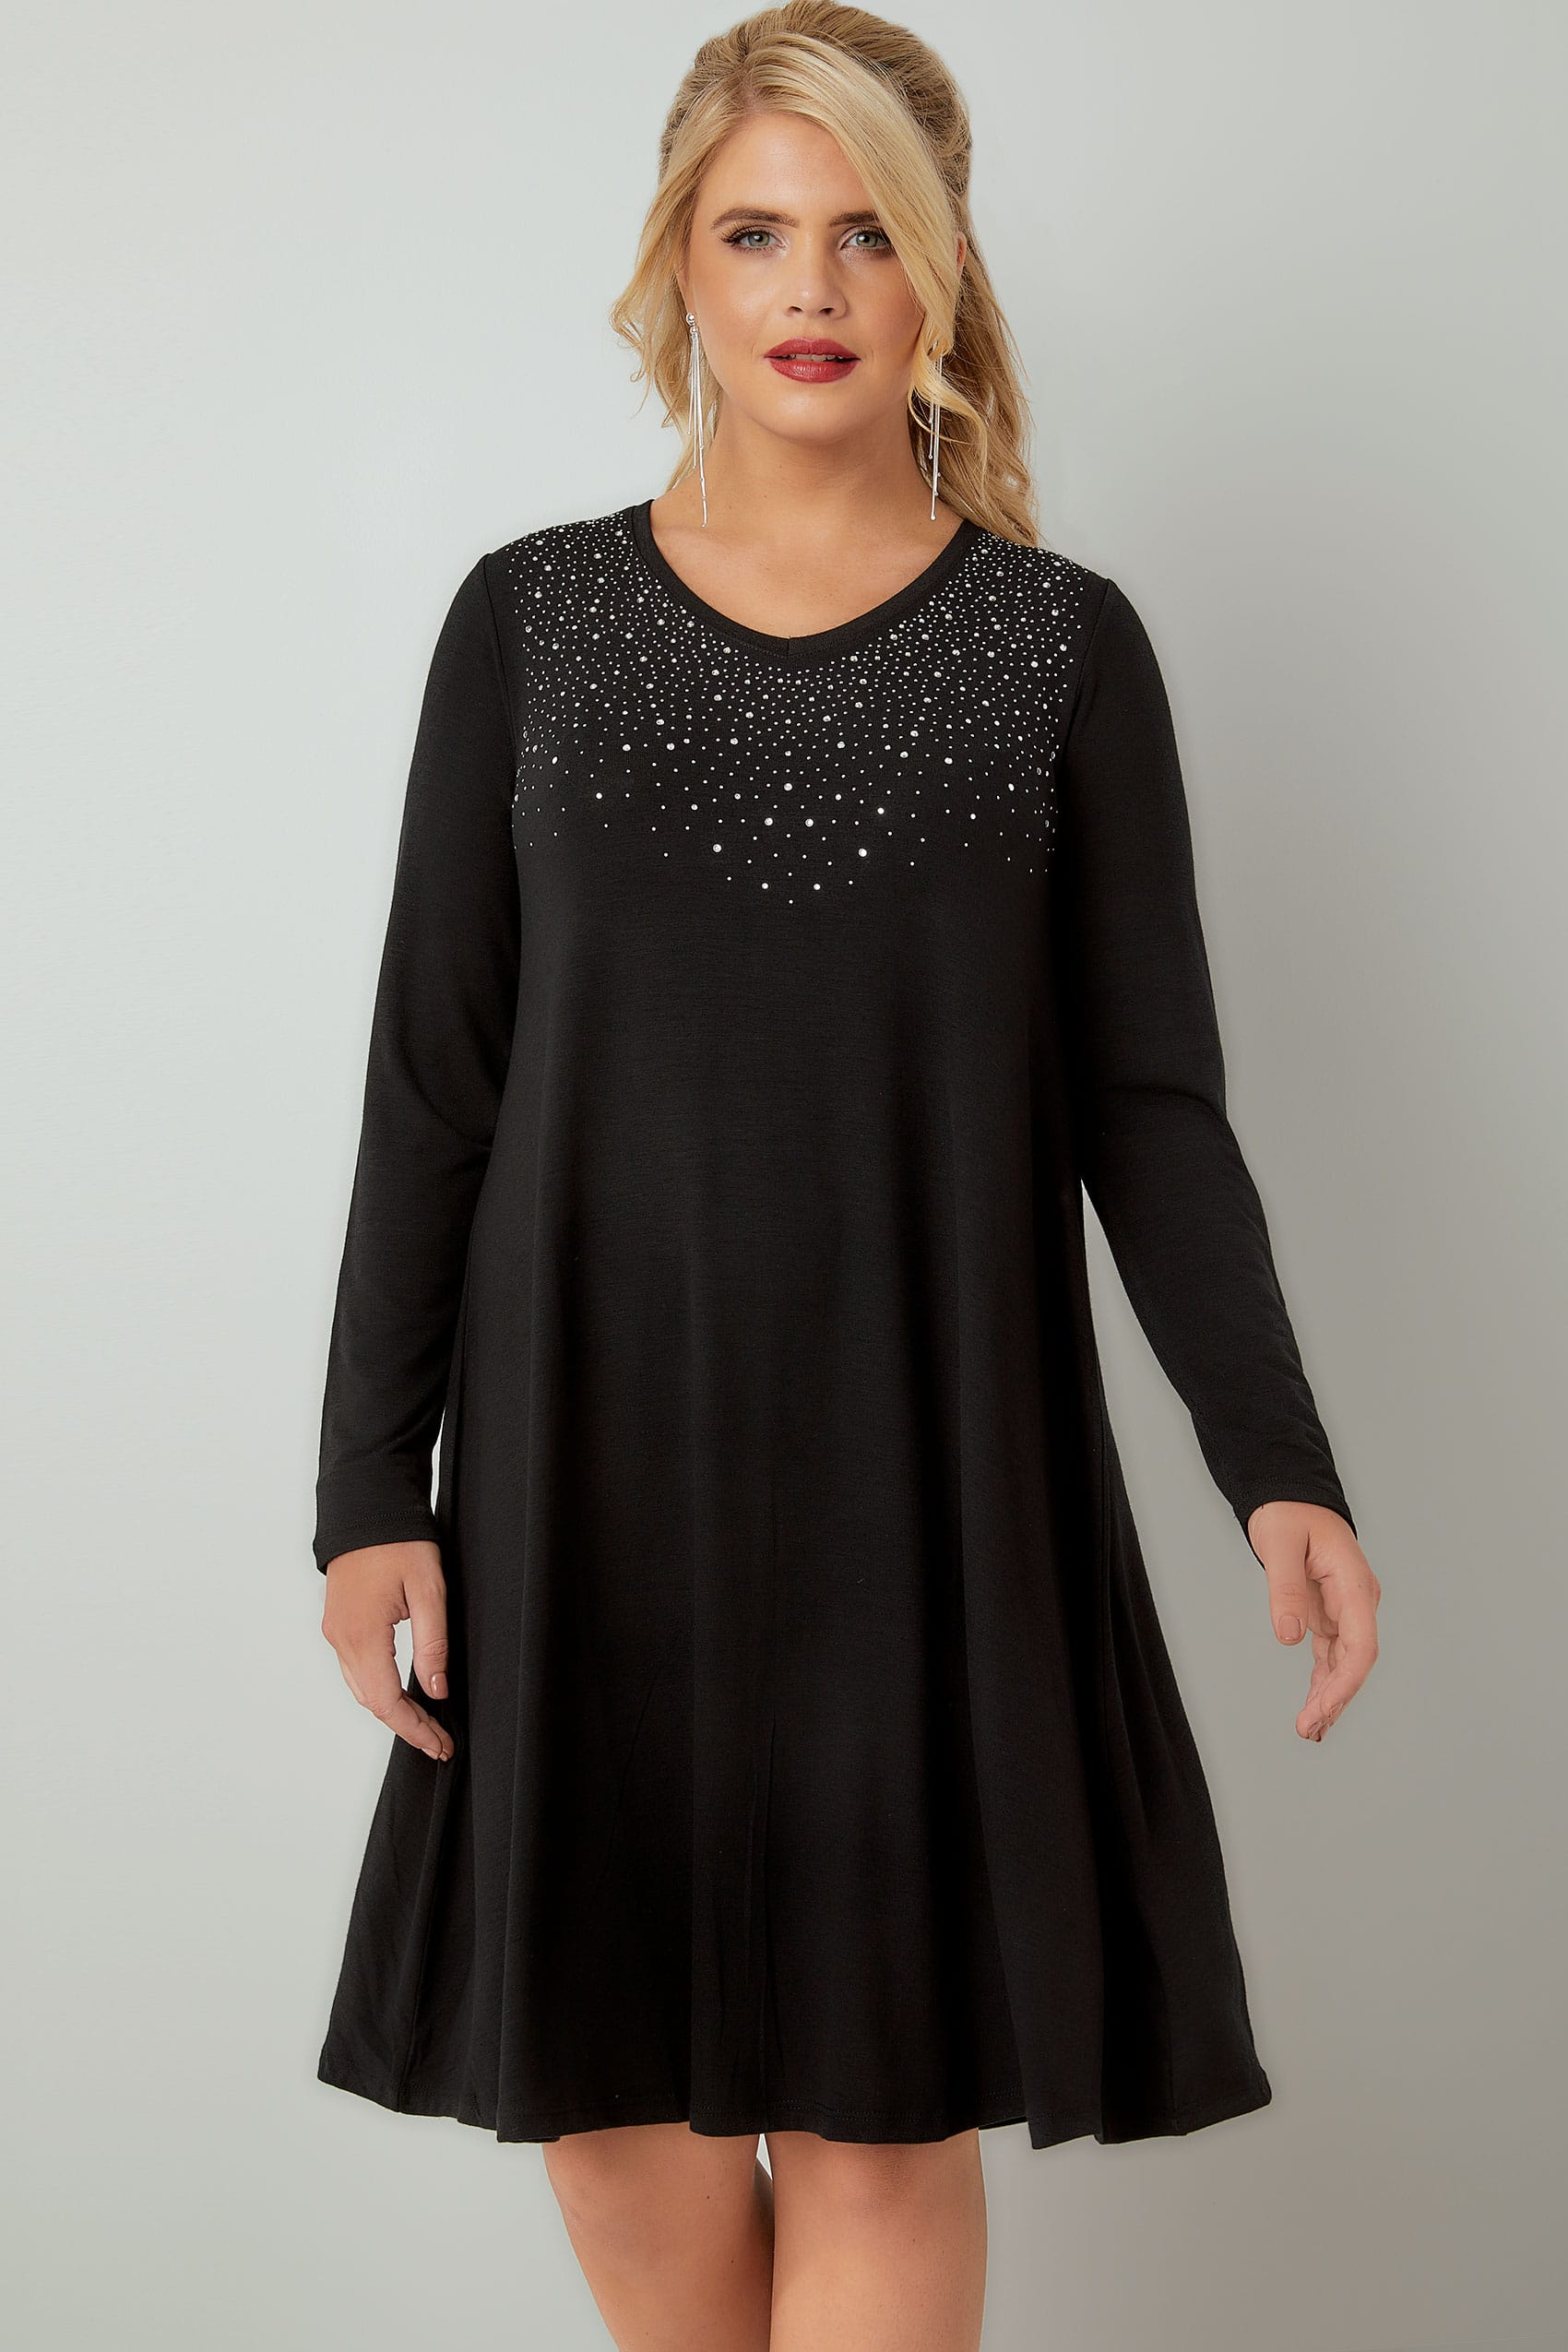 Black Fine Knit Swing Dress With Embellished Front, Plus -2175